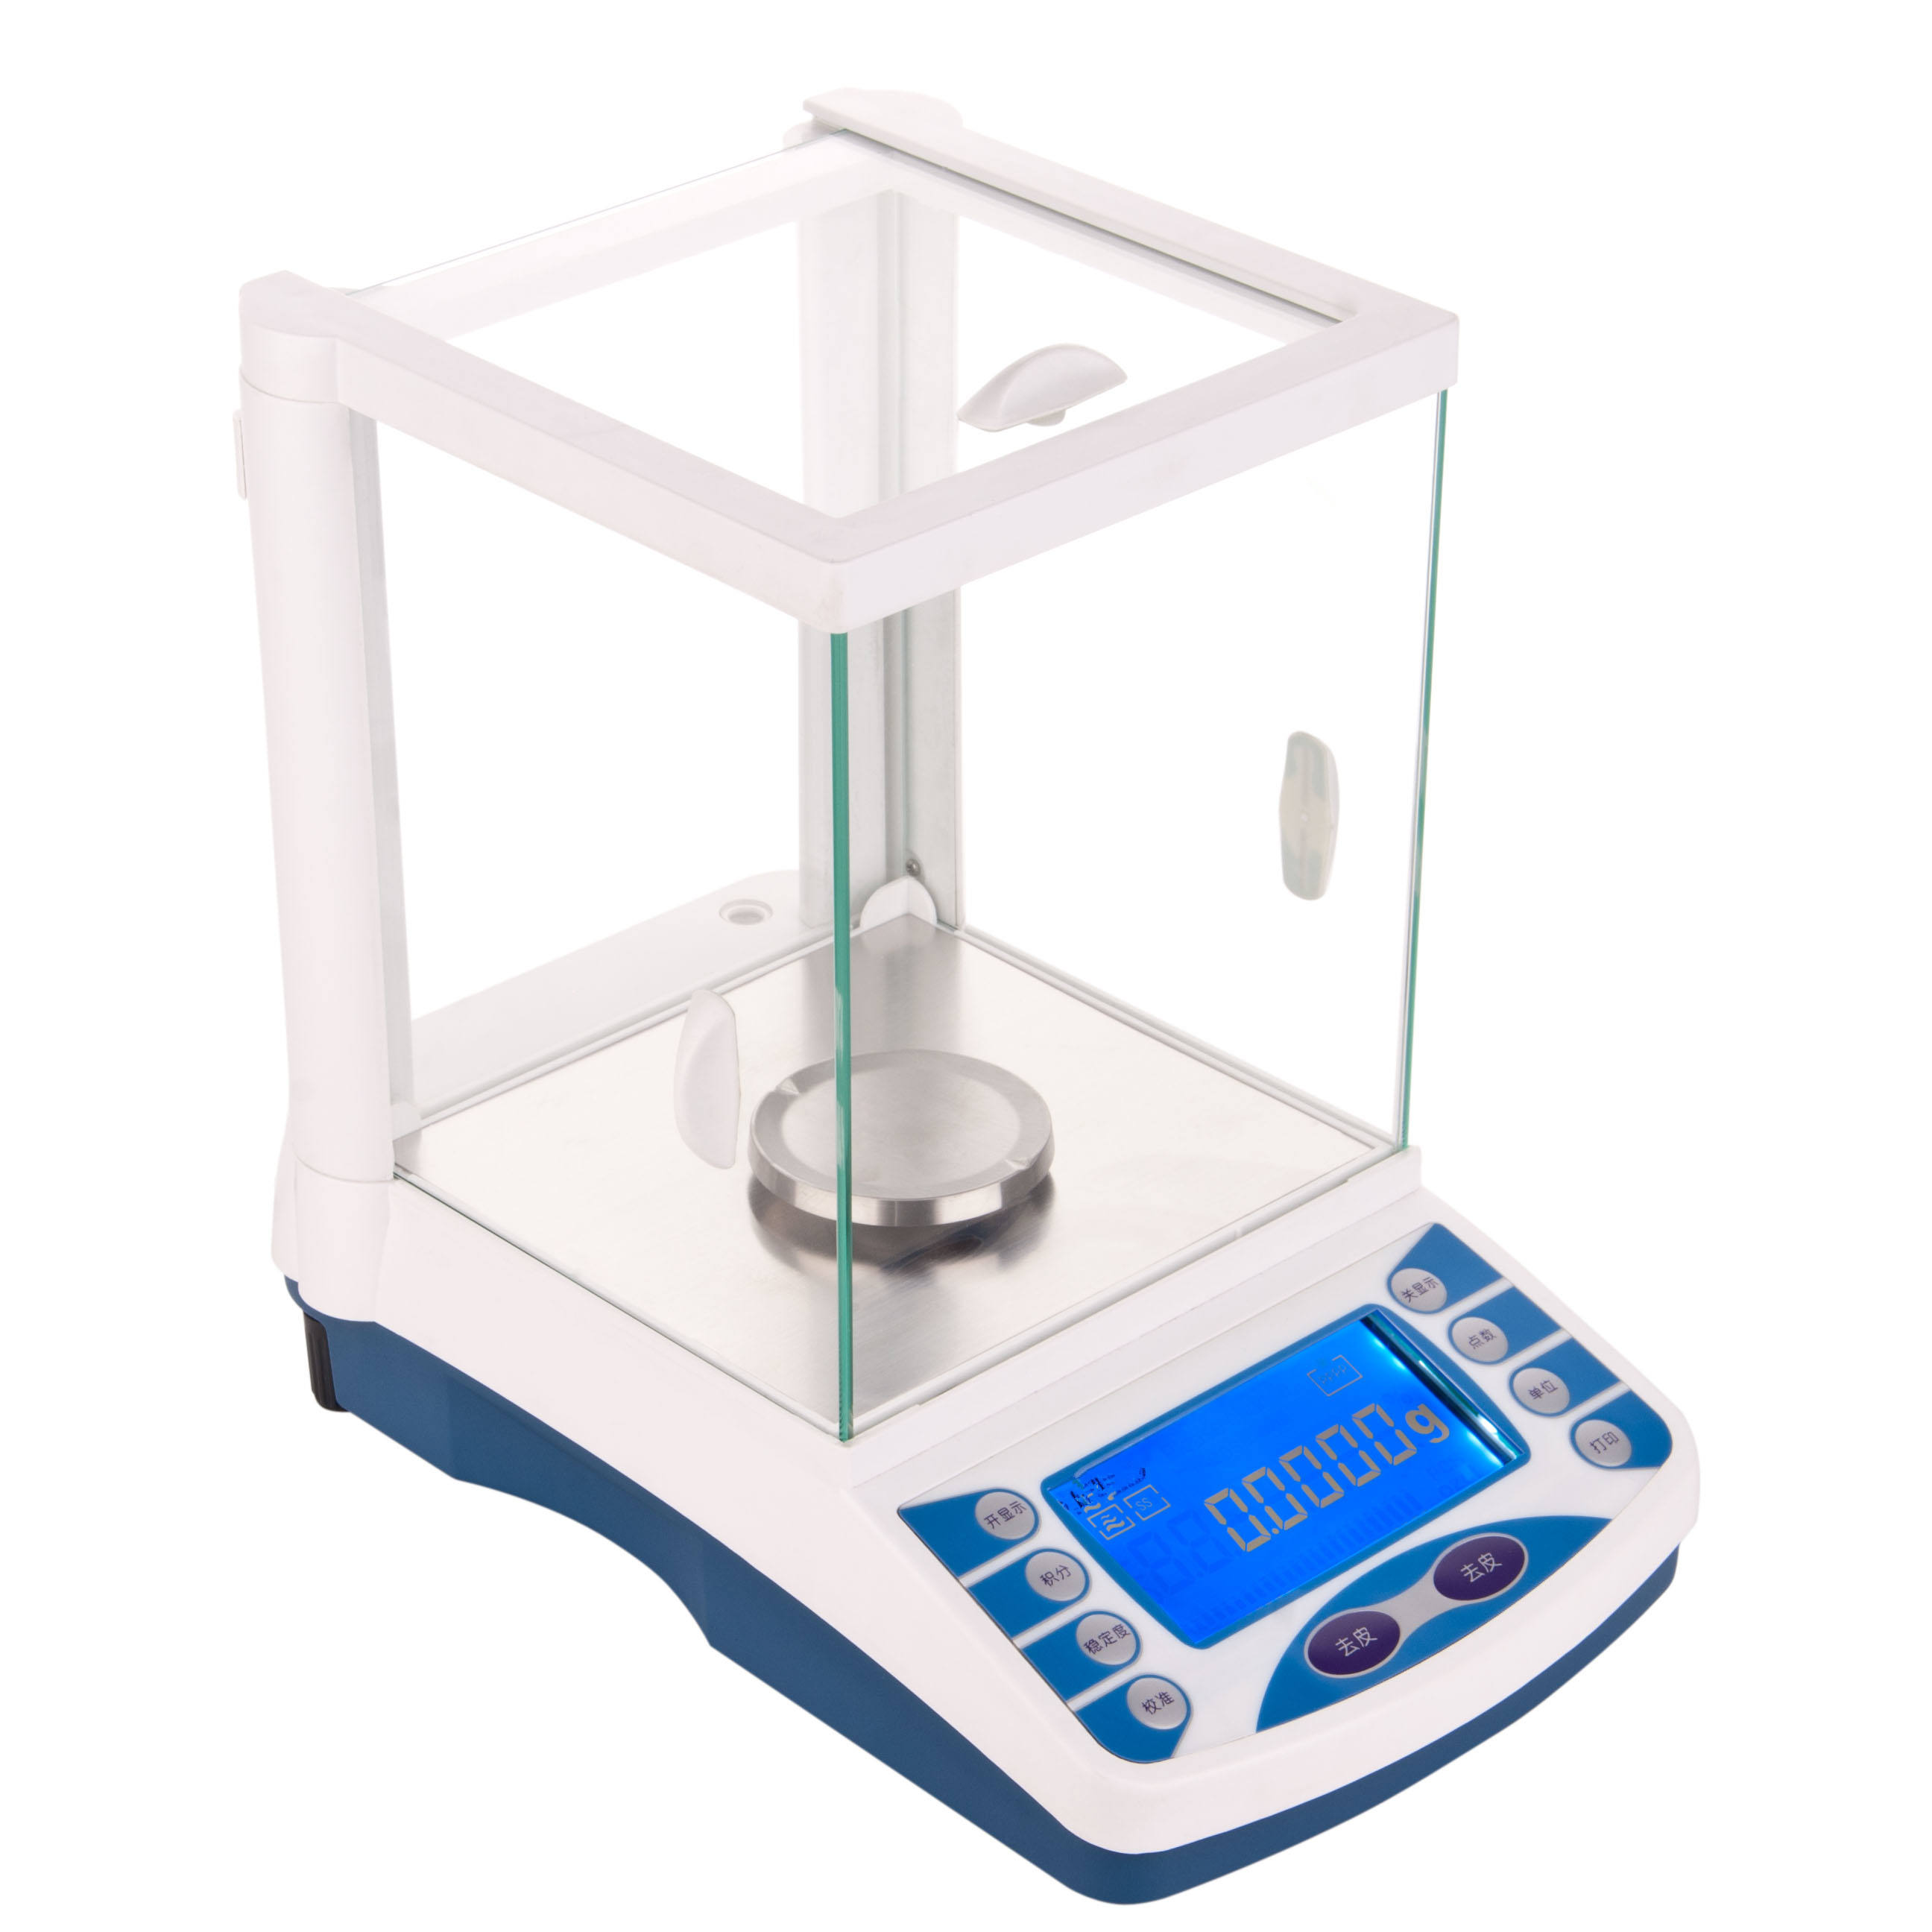 Internal Calibration Electric Weighing Scale/Electronic Analytical Balance/ Lab Precise Balance Cheap Price - MSLYK Series